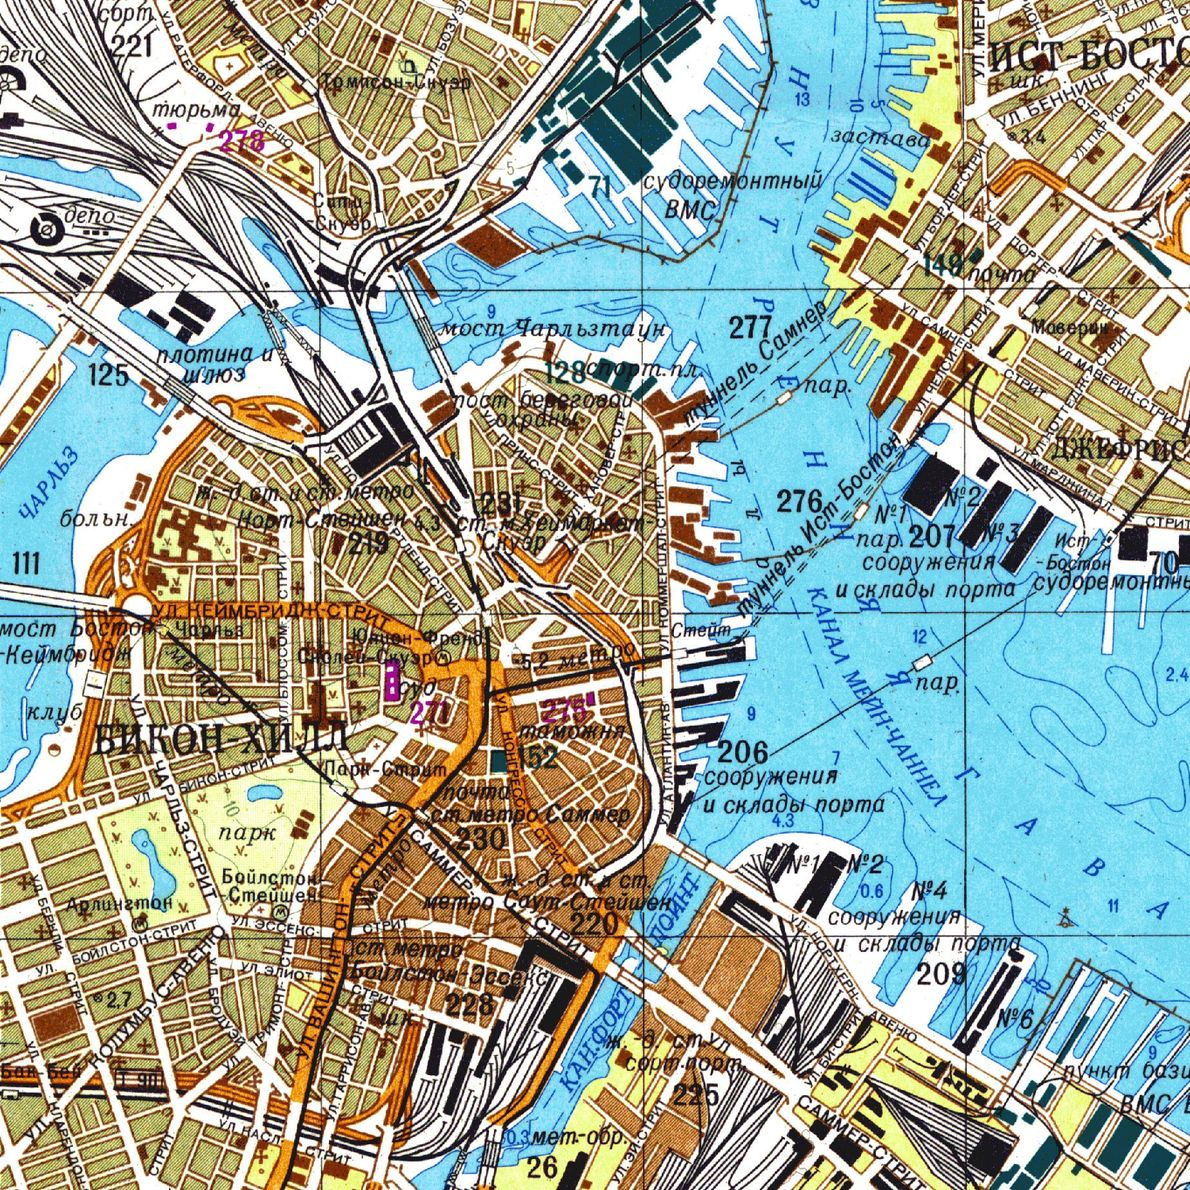 A Soviet map of Boston printed in 1979.